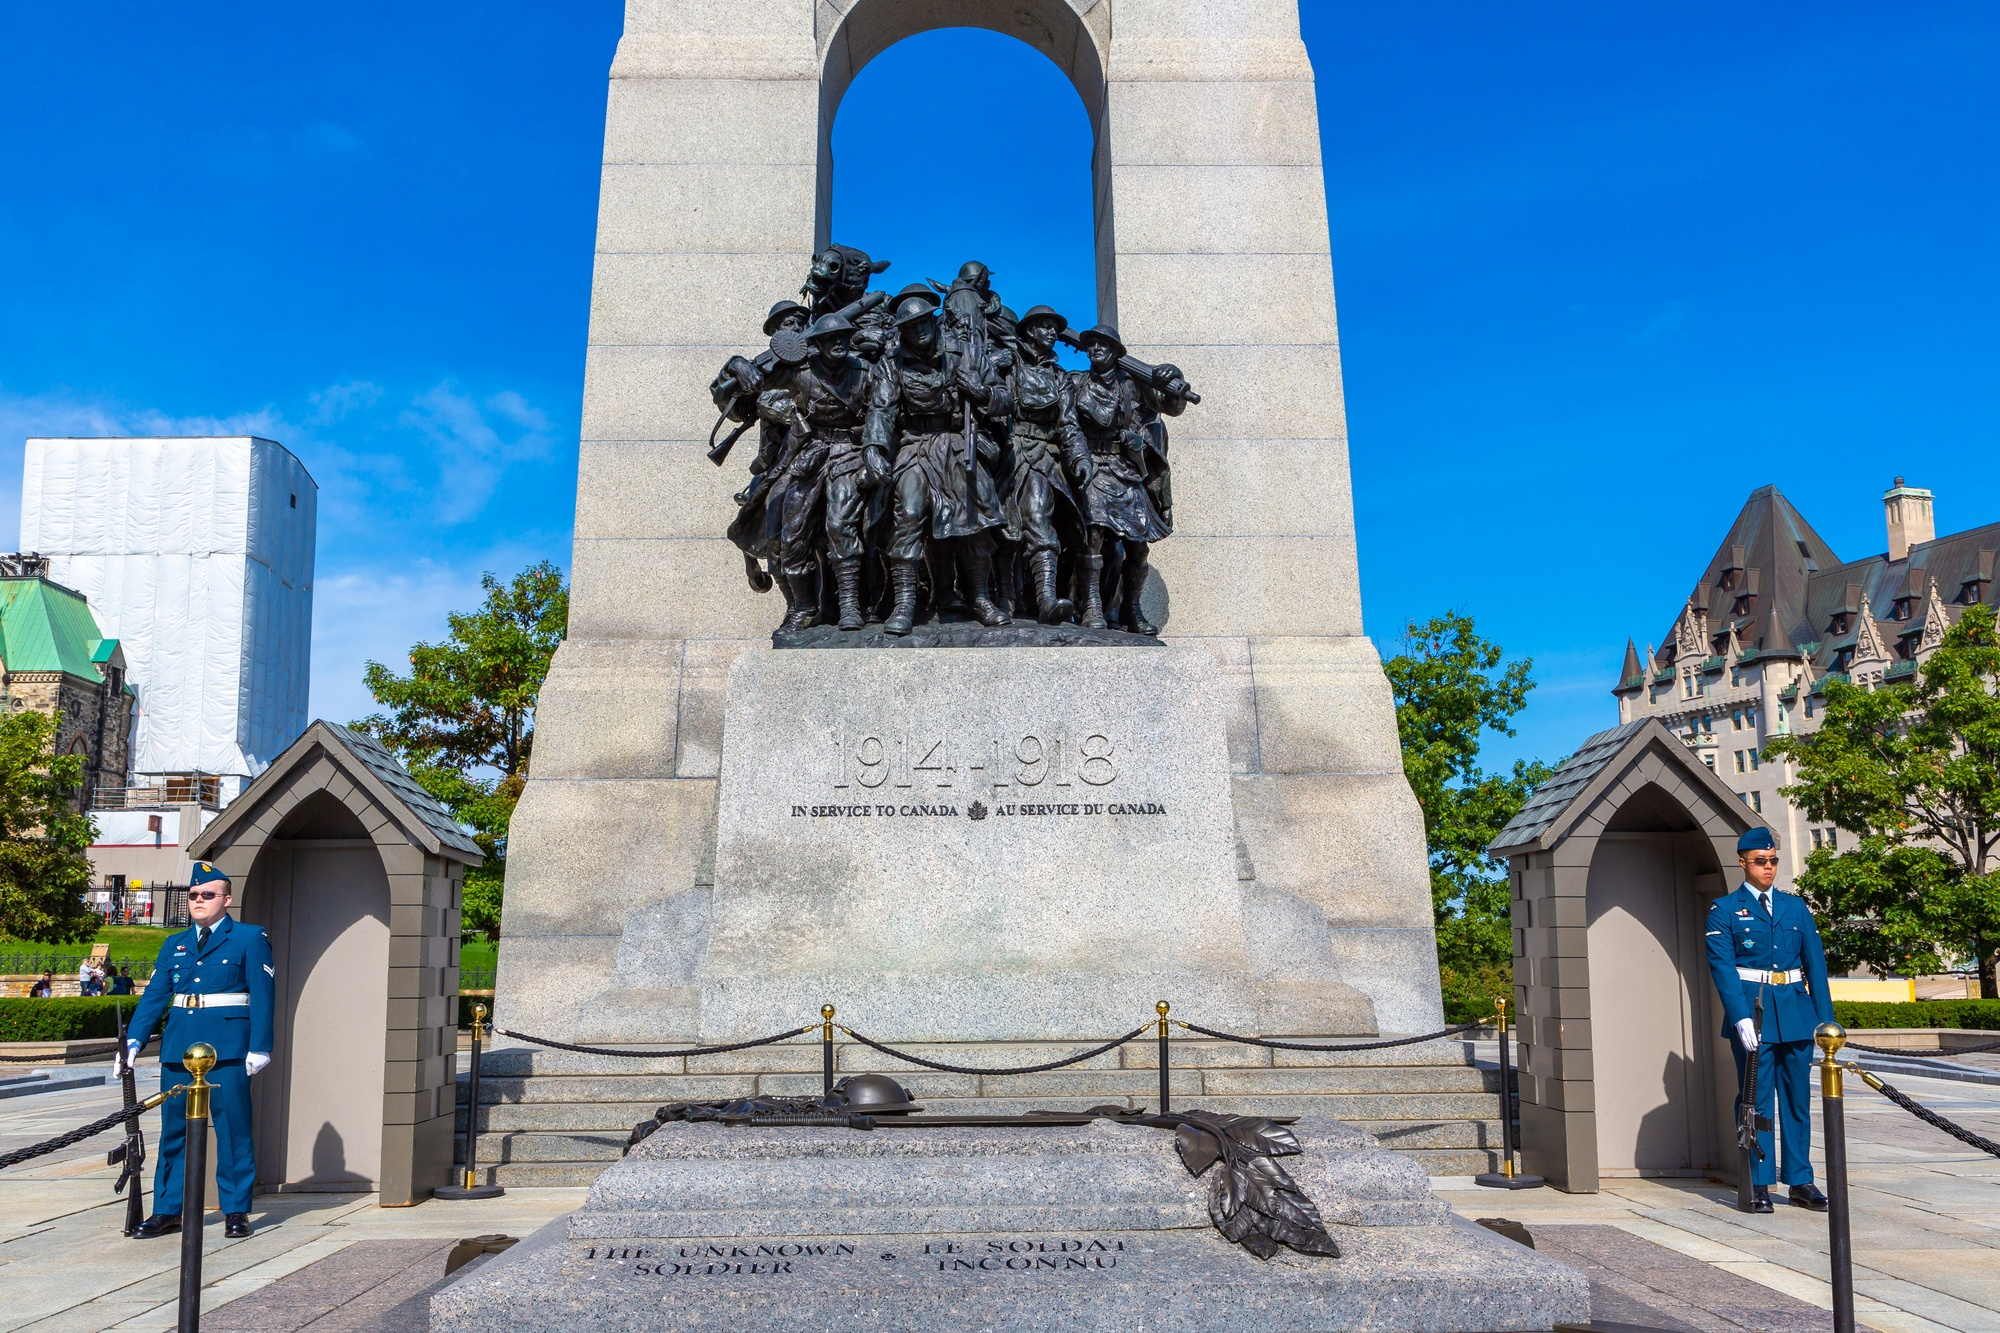 Guards at The National War Memorial in Ottawa